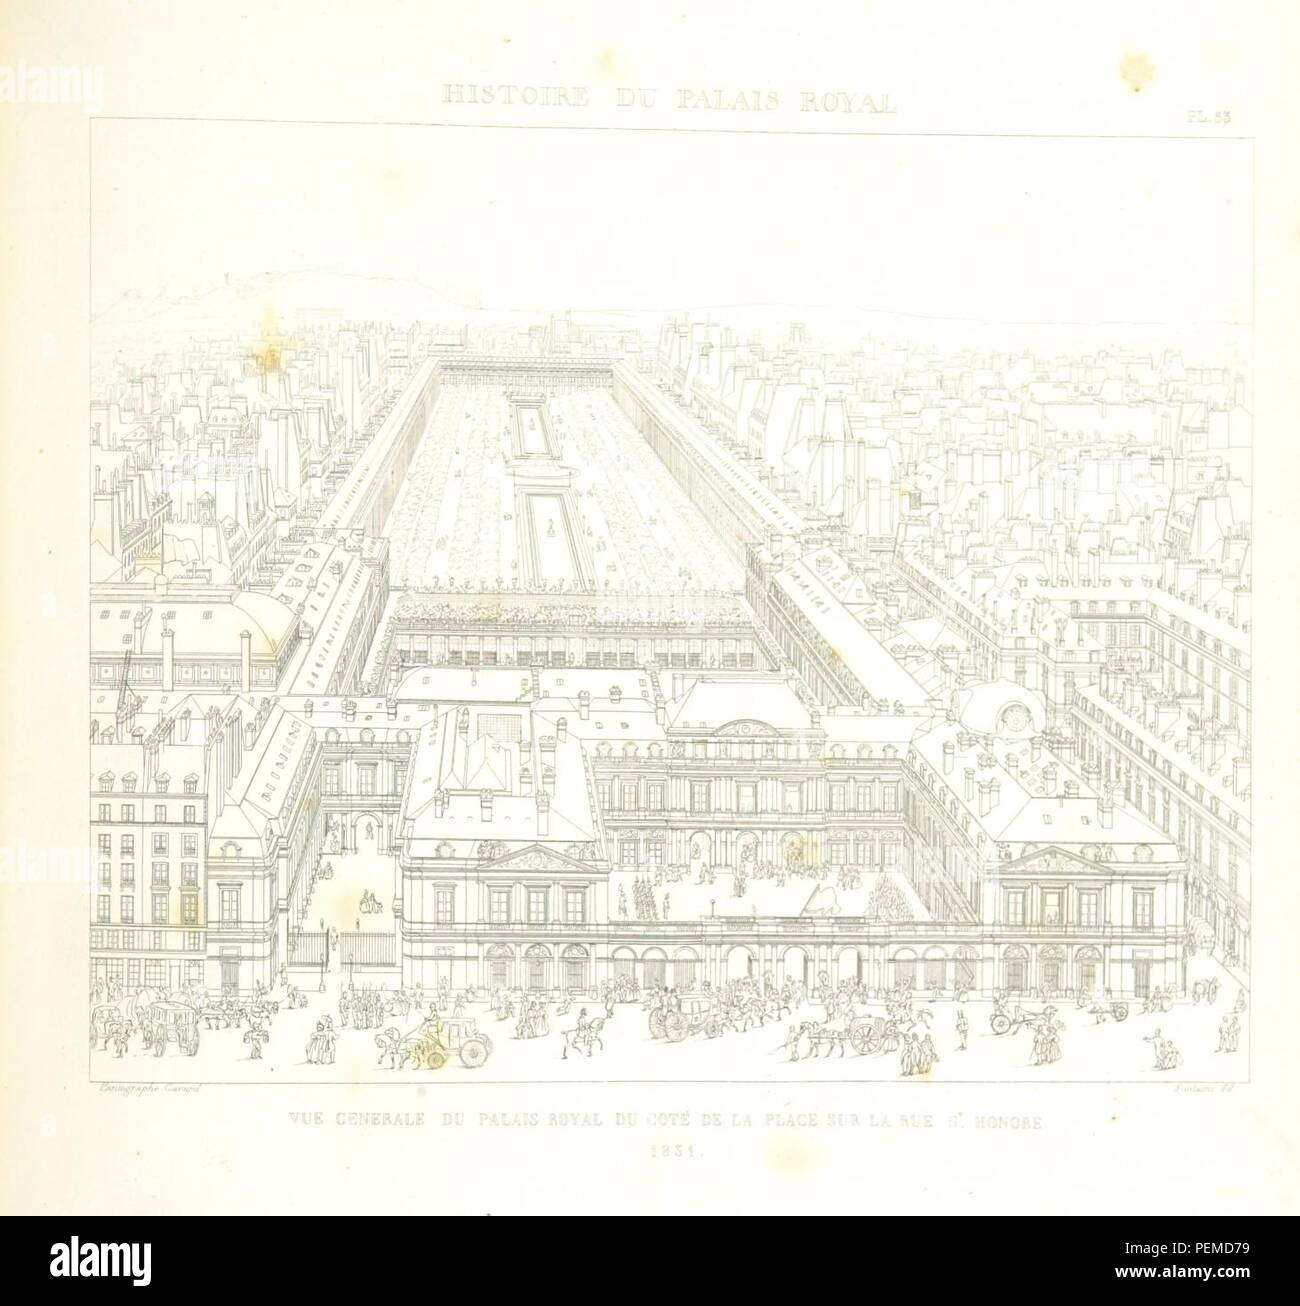 L 159 Stock Photos Images Page 3 Alamy Fontaine Wiring Diagram Historic Archive Image Taken From Of Histoire Du Palais Royal By